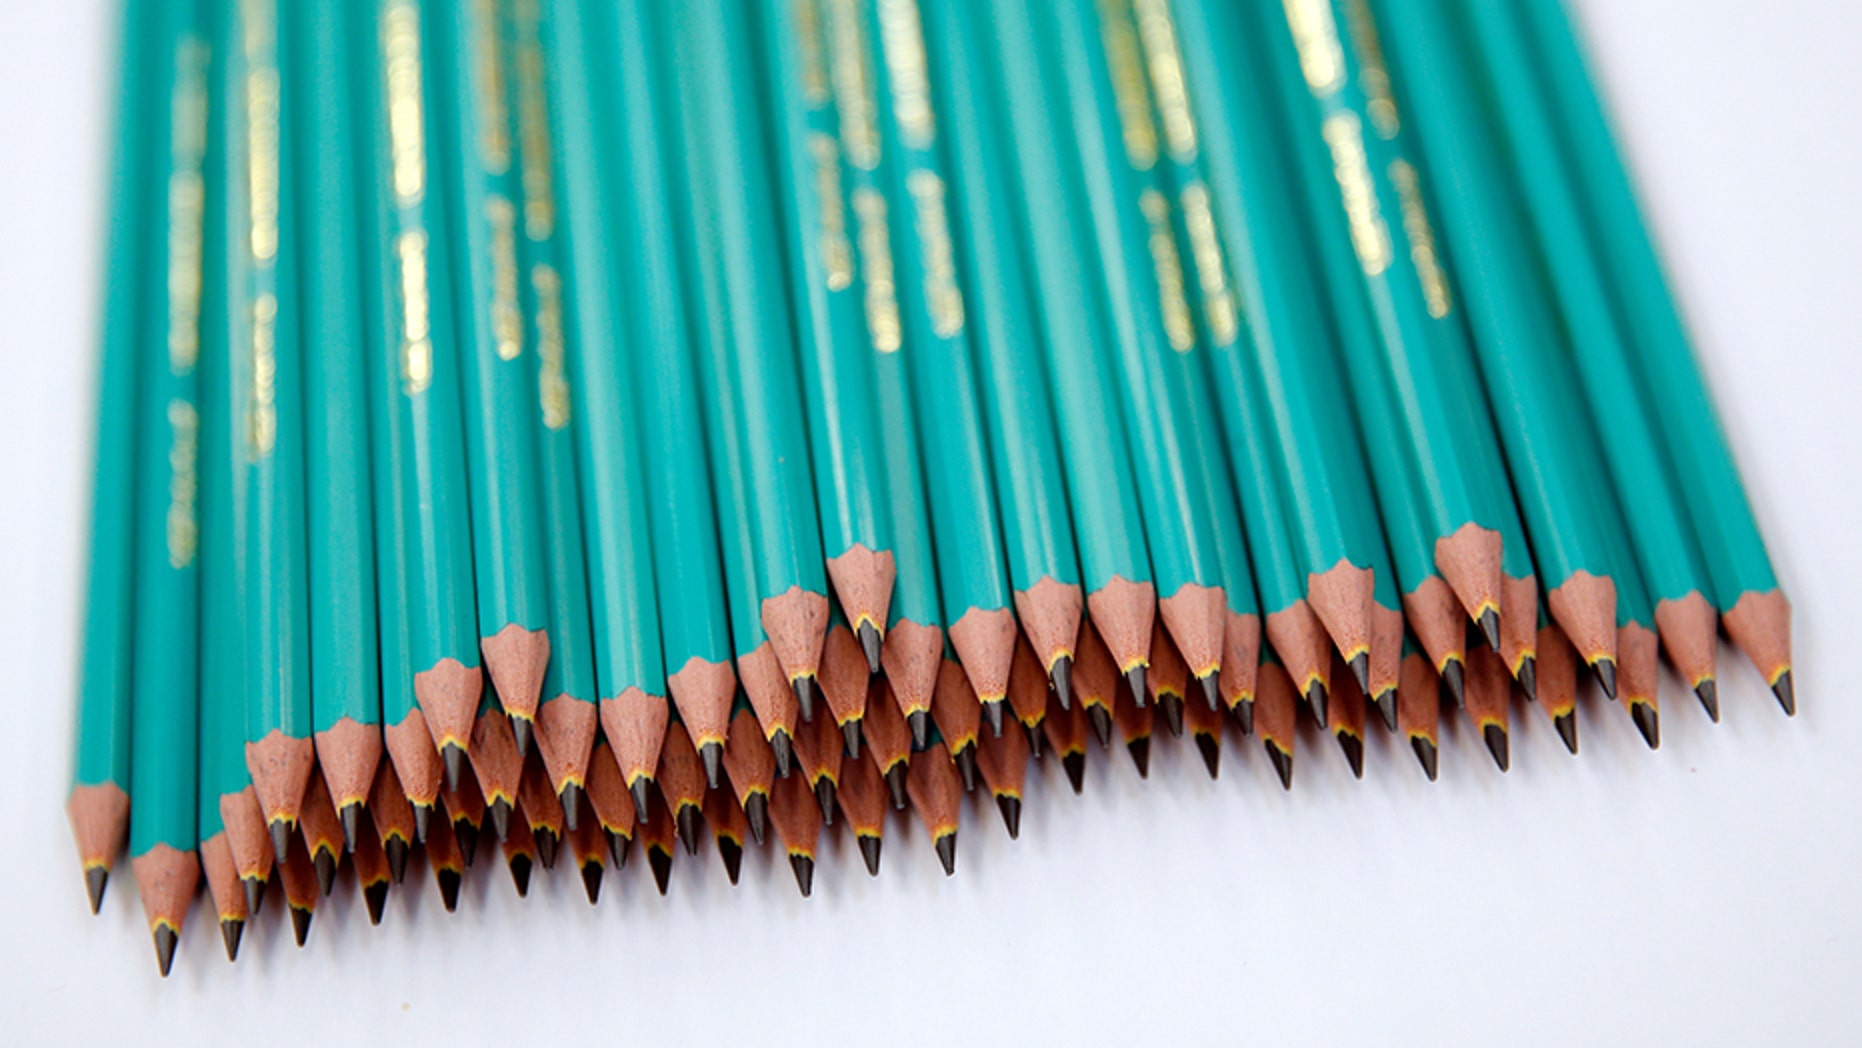 A Florida boy was stabbed in the arm by his own freshly sharpened pencil, which was poking out of his backpack.